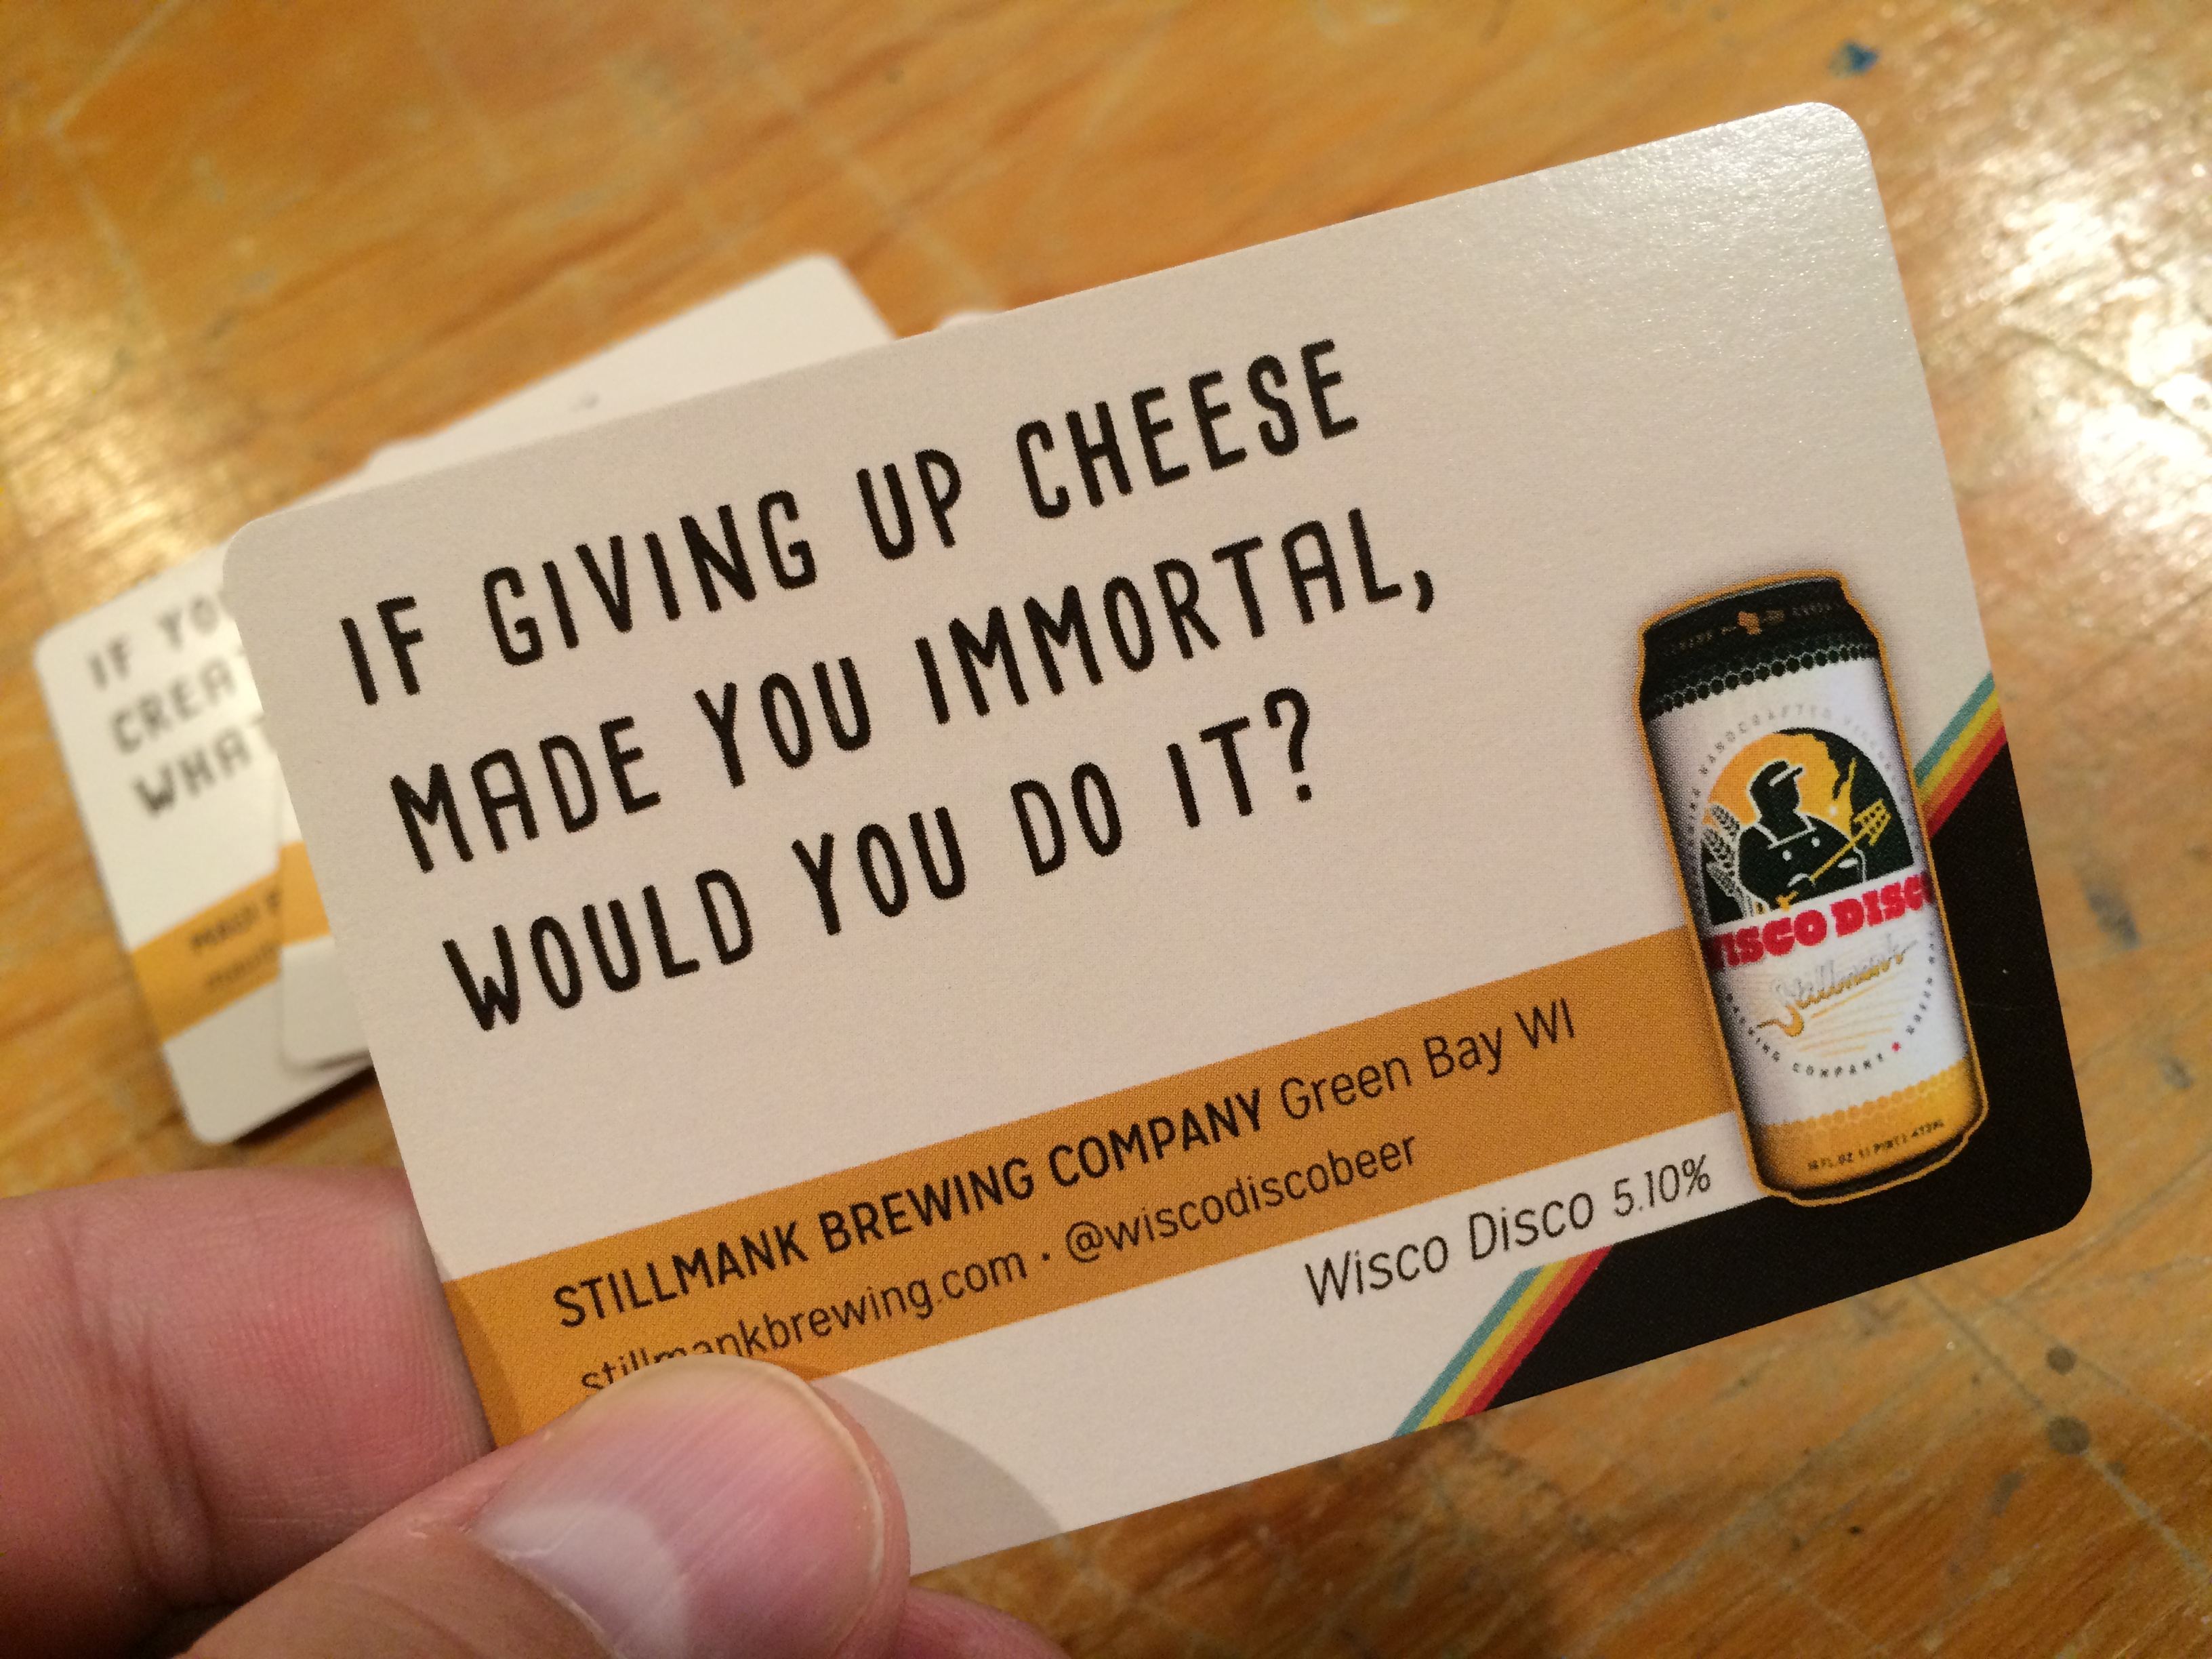 Sample cards thinking drinking if giving up cheese made you immortal would you do it stillmank brewing companys wisco disco is featured reheart Gallery